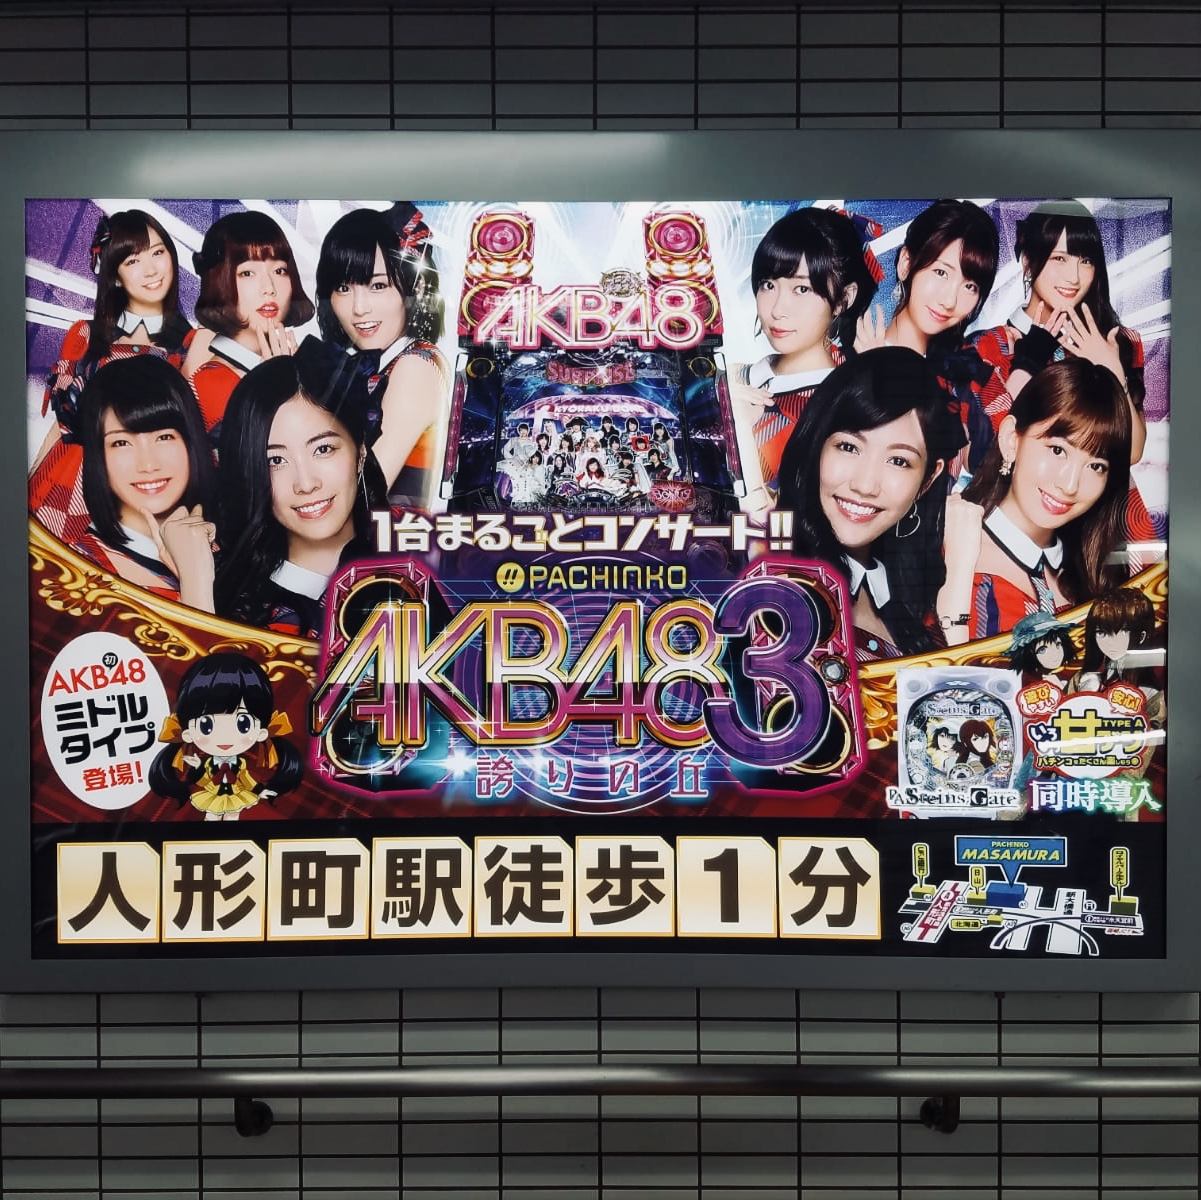 Tokyo ON #048: Everything you wanted to know about AKB48